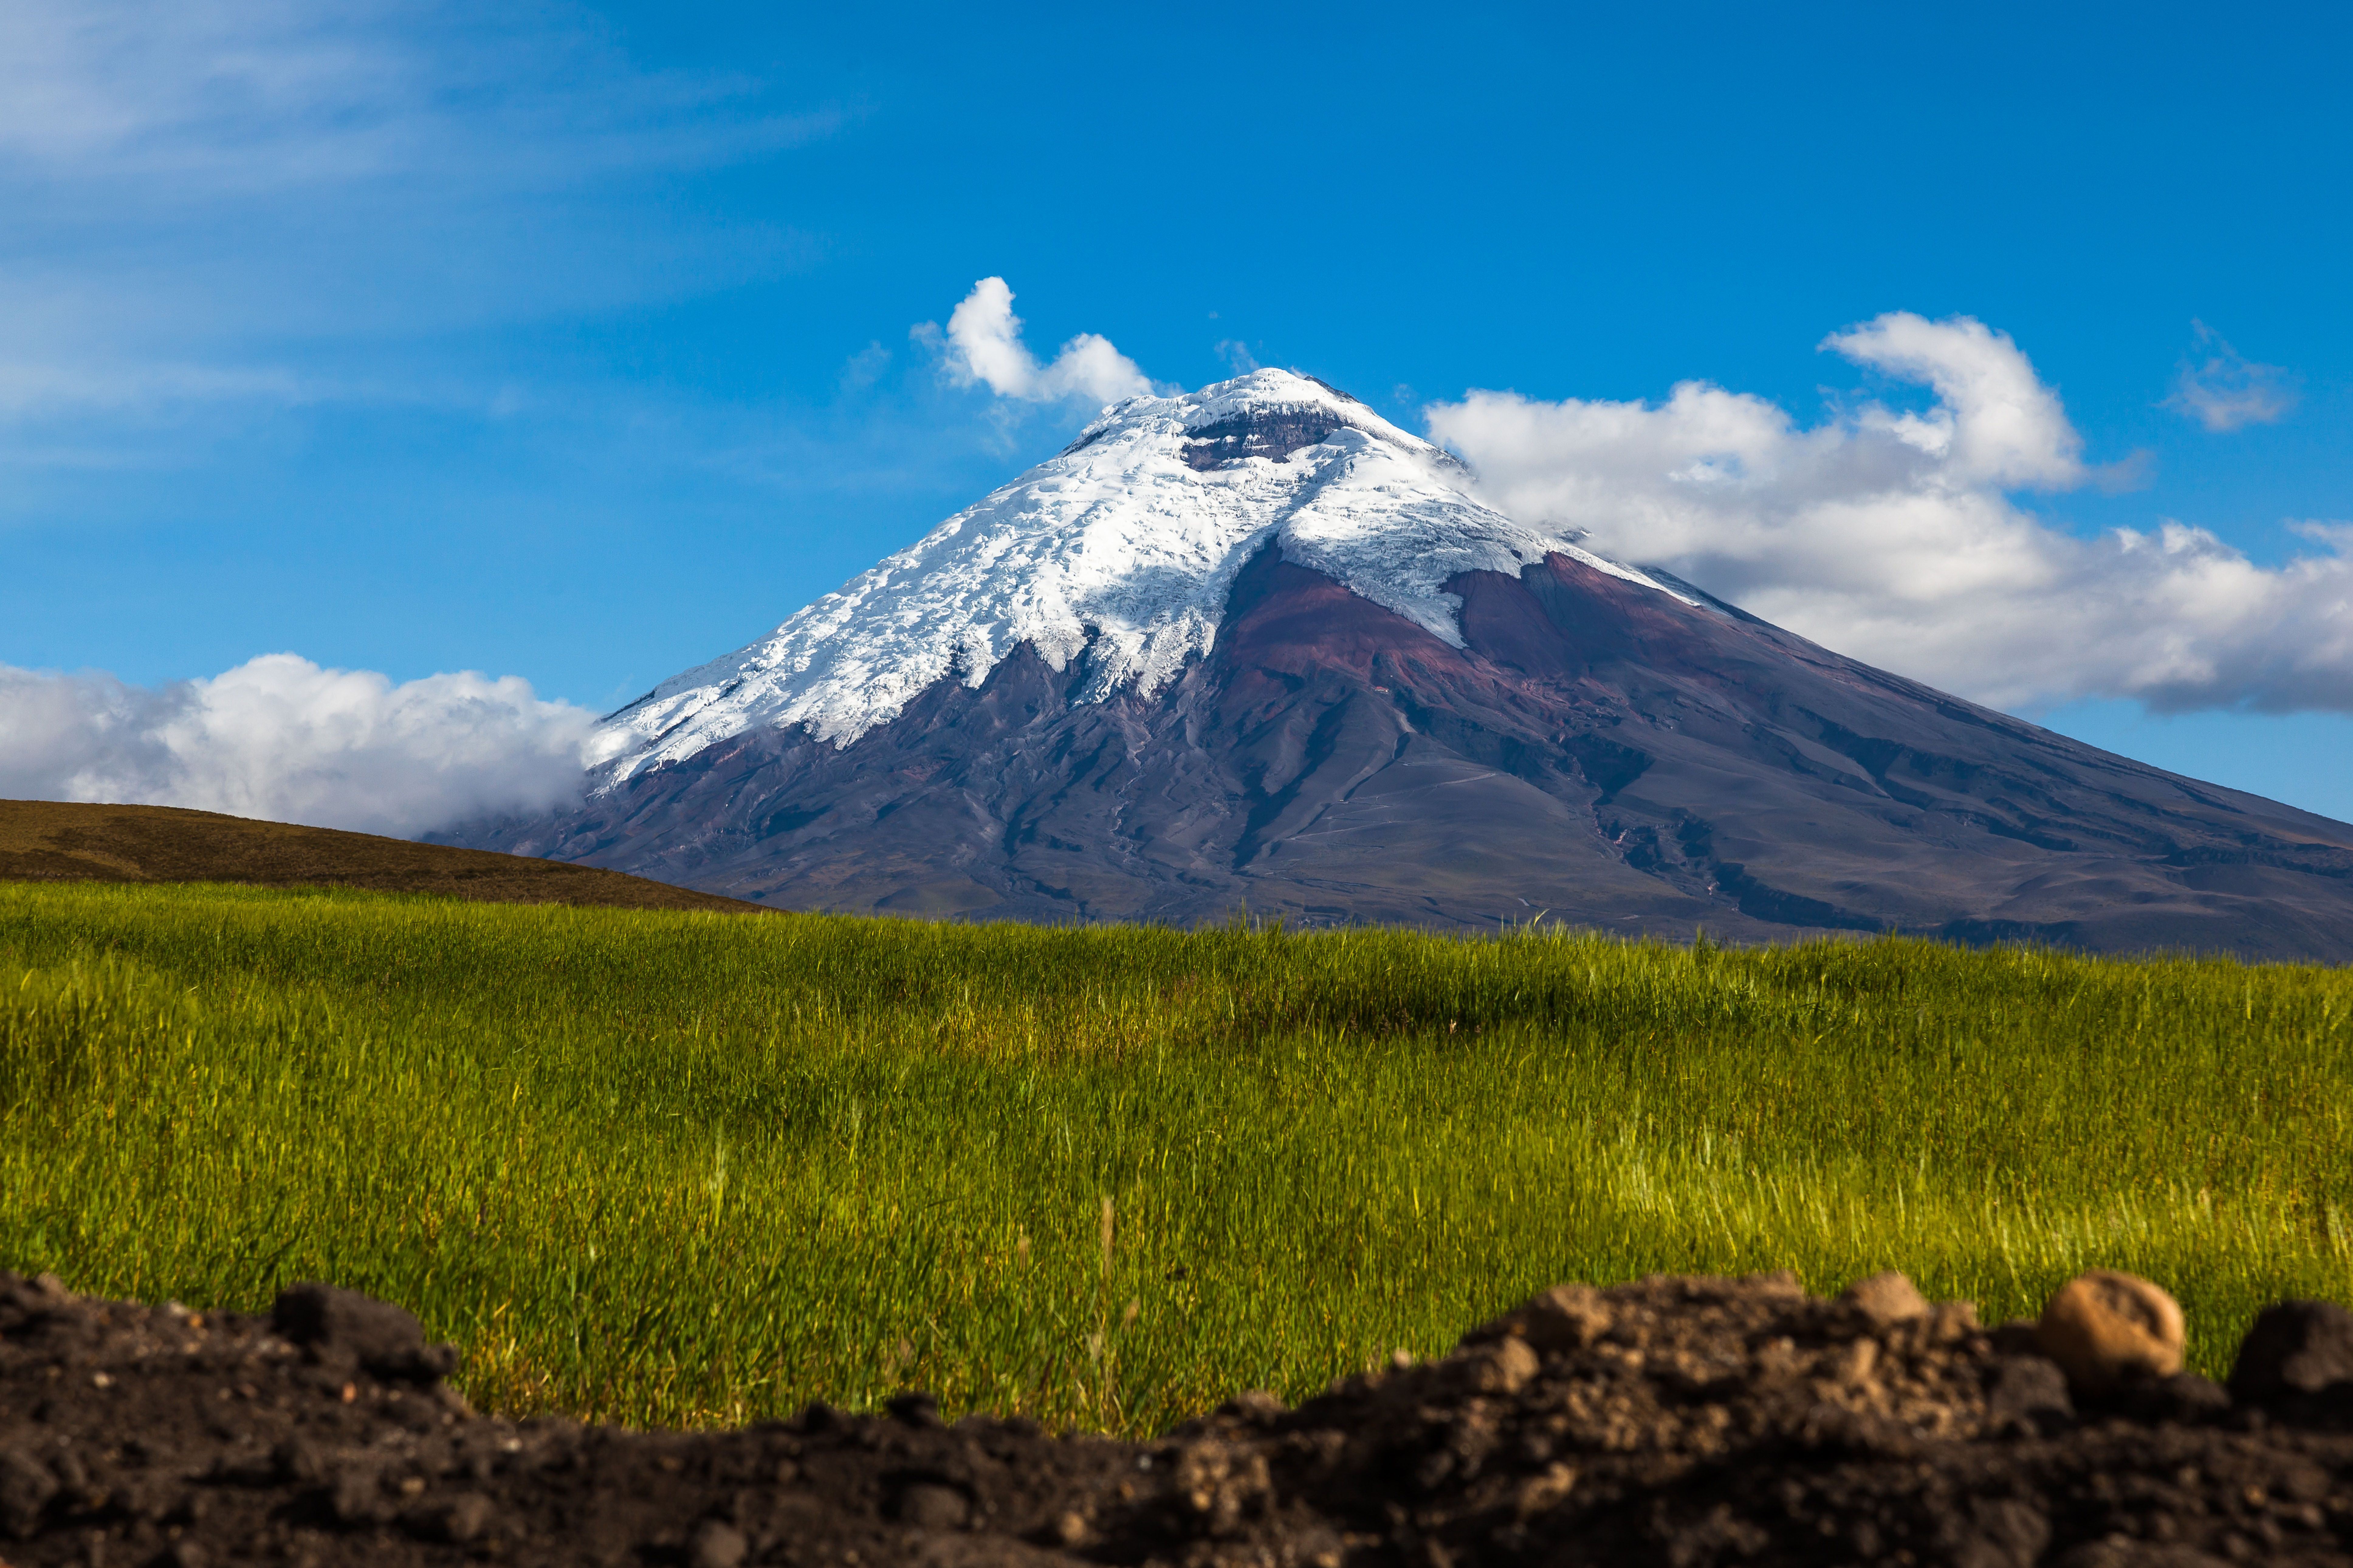 Walk beneath the mighty volcanoes of Ecuador and discover the exotic wildlife of Galapagos on our new two-part adventure... #Ecuador #Galapagos #GalapagosIslands #SouthAmerica #Adventureholiday #walkingholiday #andes